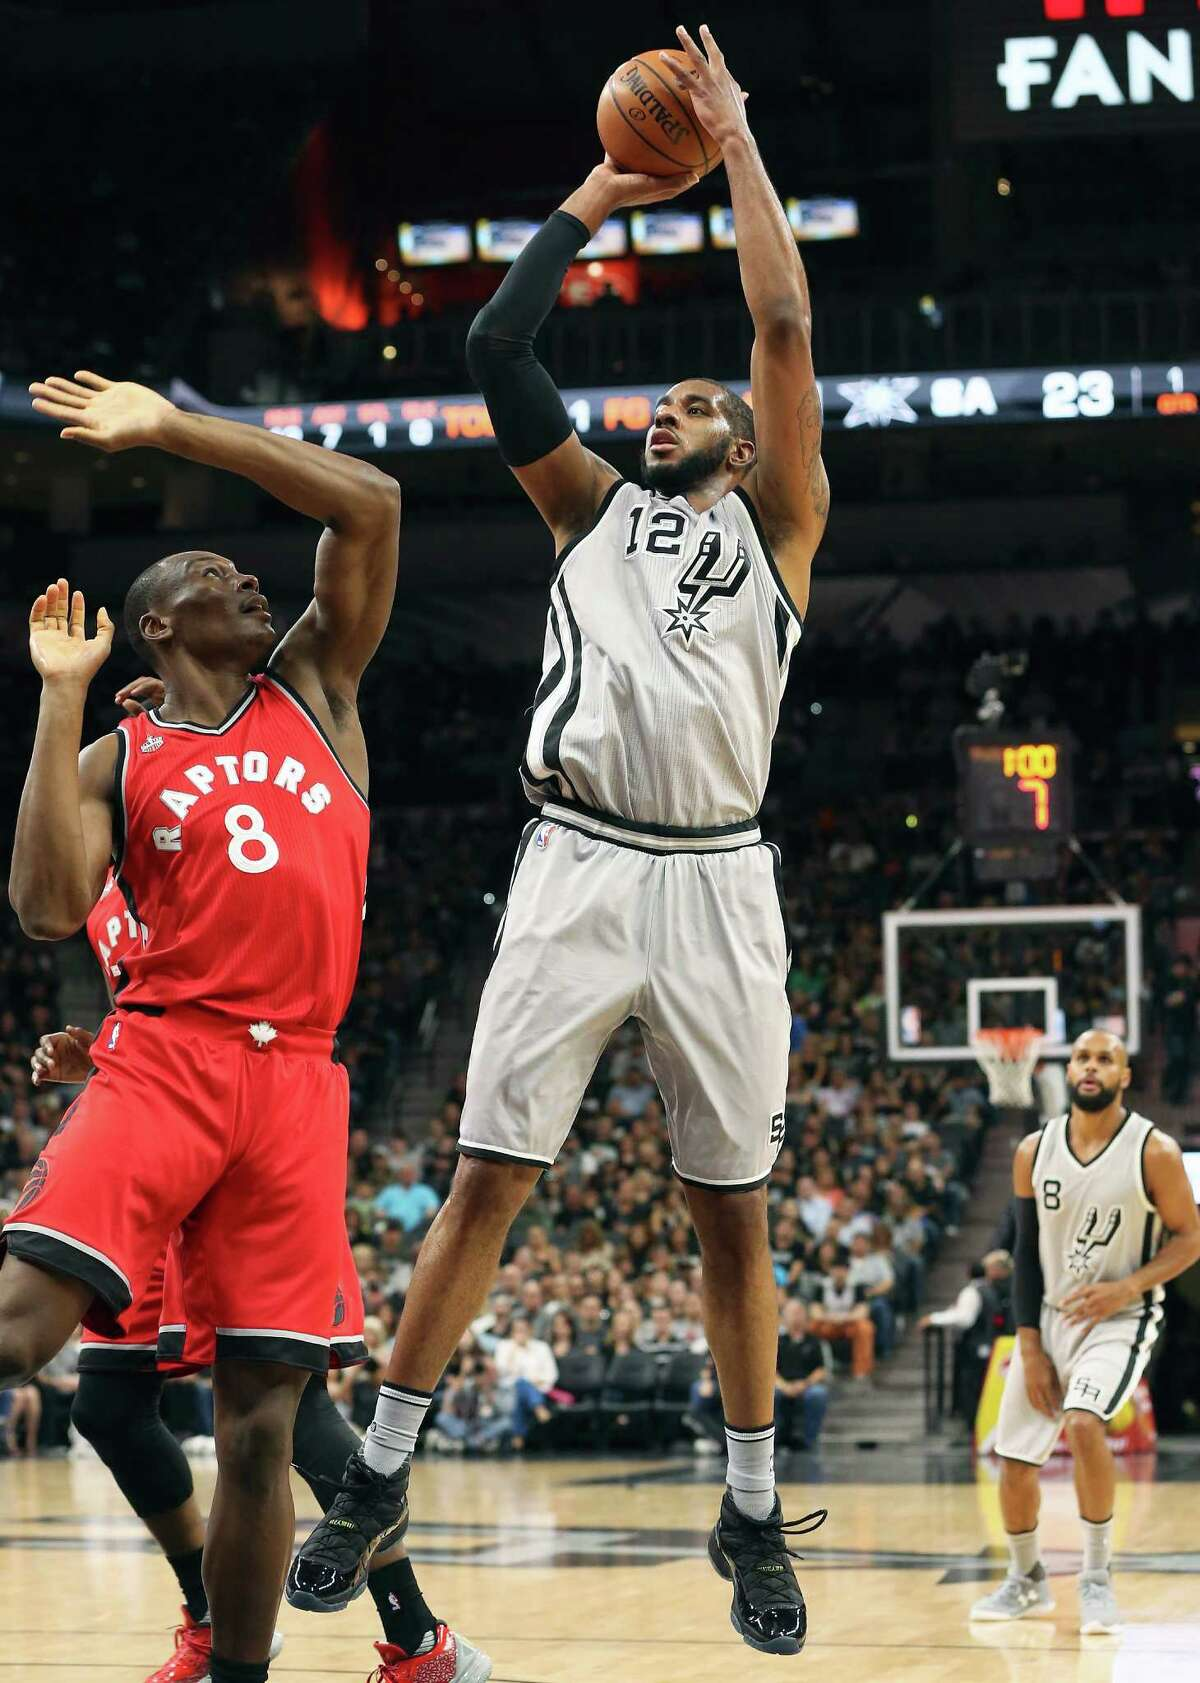 LaMarcus Aldridge pumps another shot over Bismack Biyombo as the Spurs play Toronto at the AT&T Center on April 2, 2016.